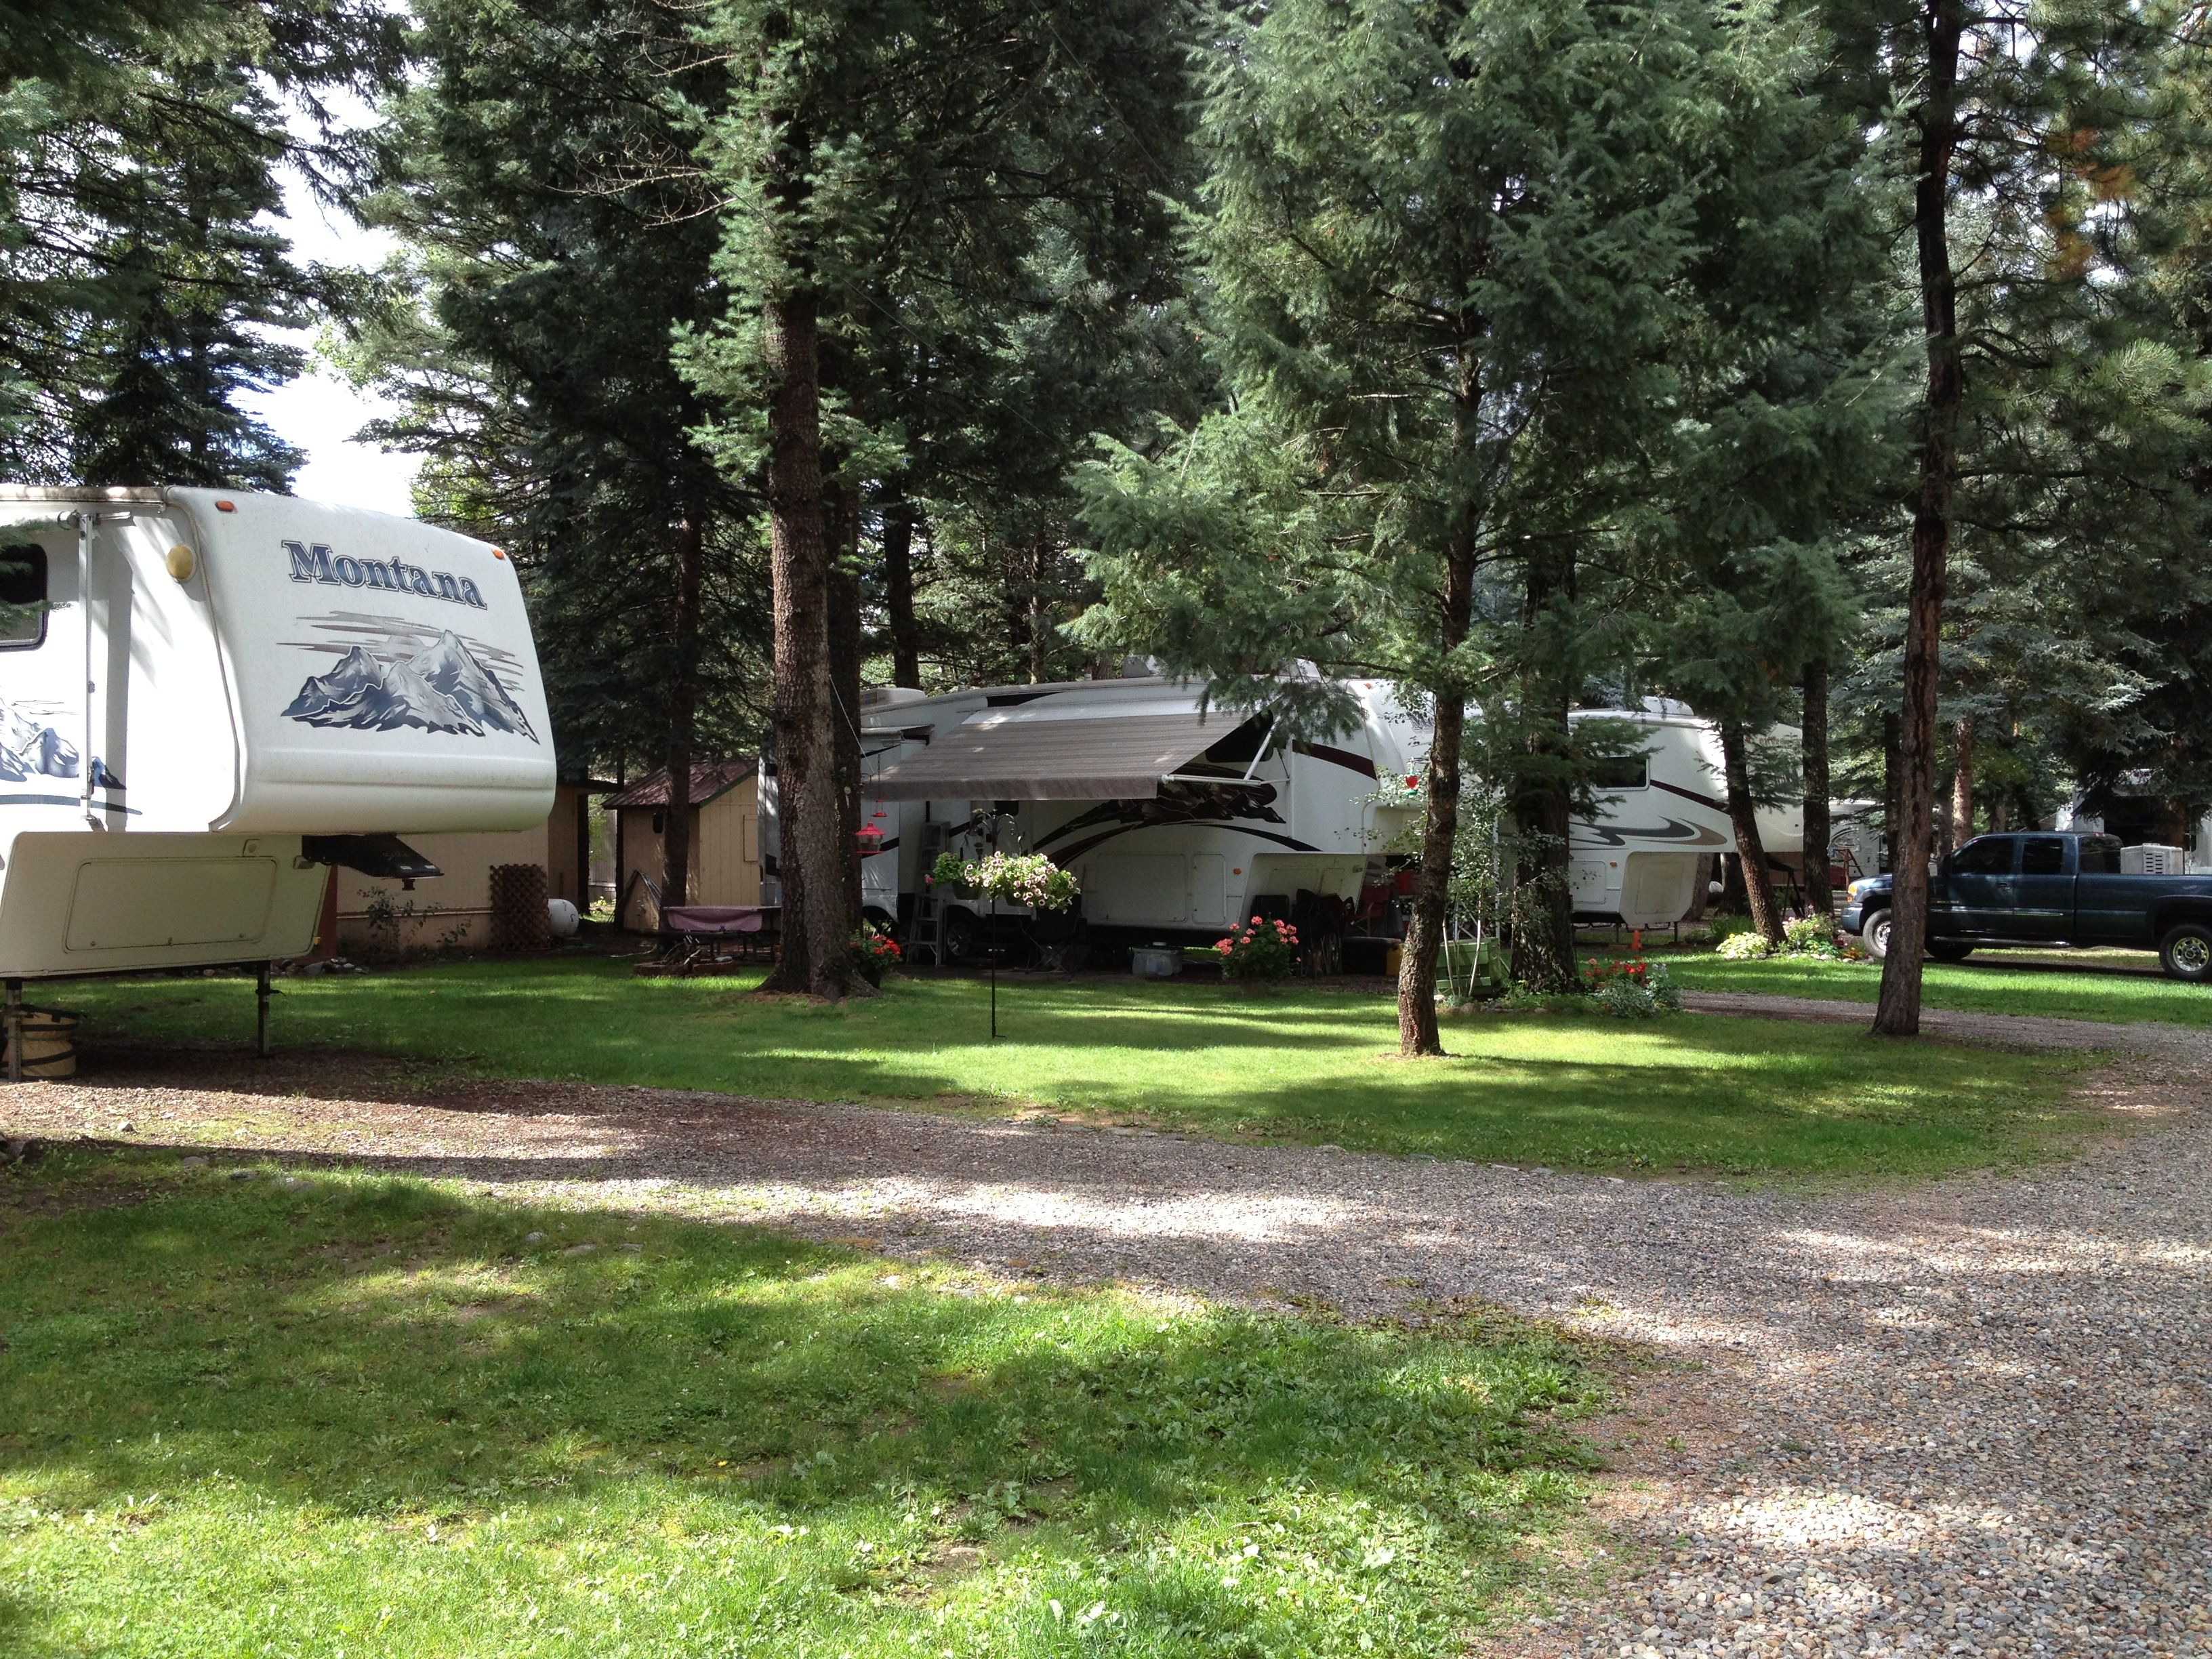 Pin By Tina Schramme On Colorado Rv Parks Types Of Christmas Trees Park